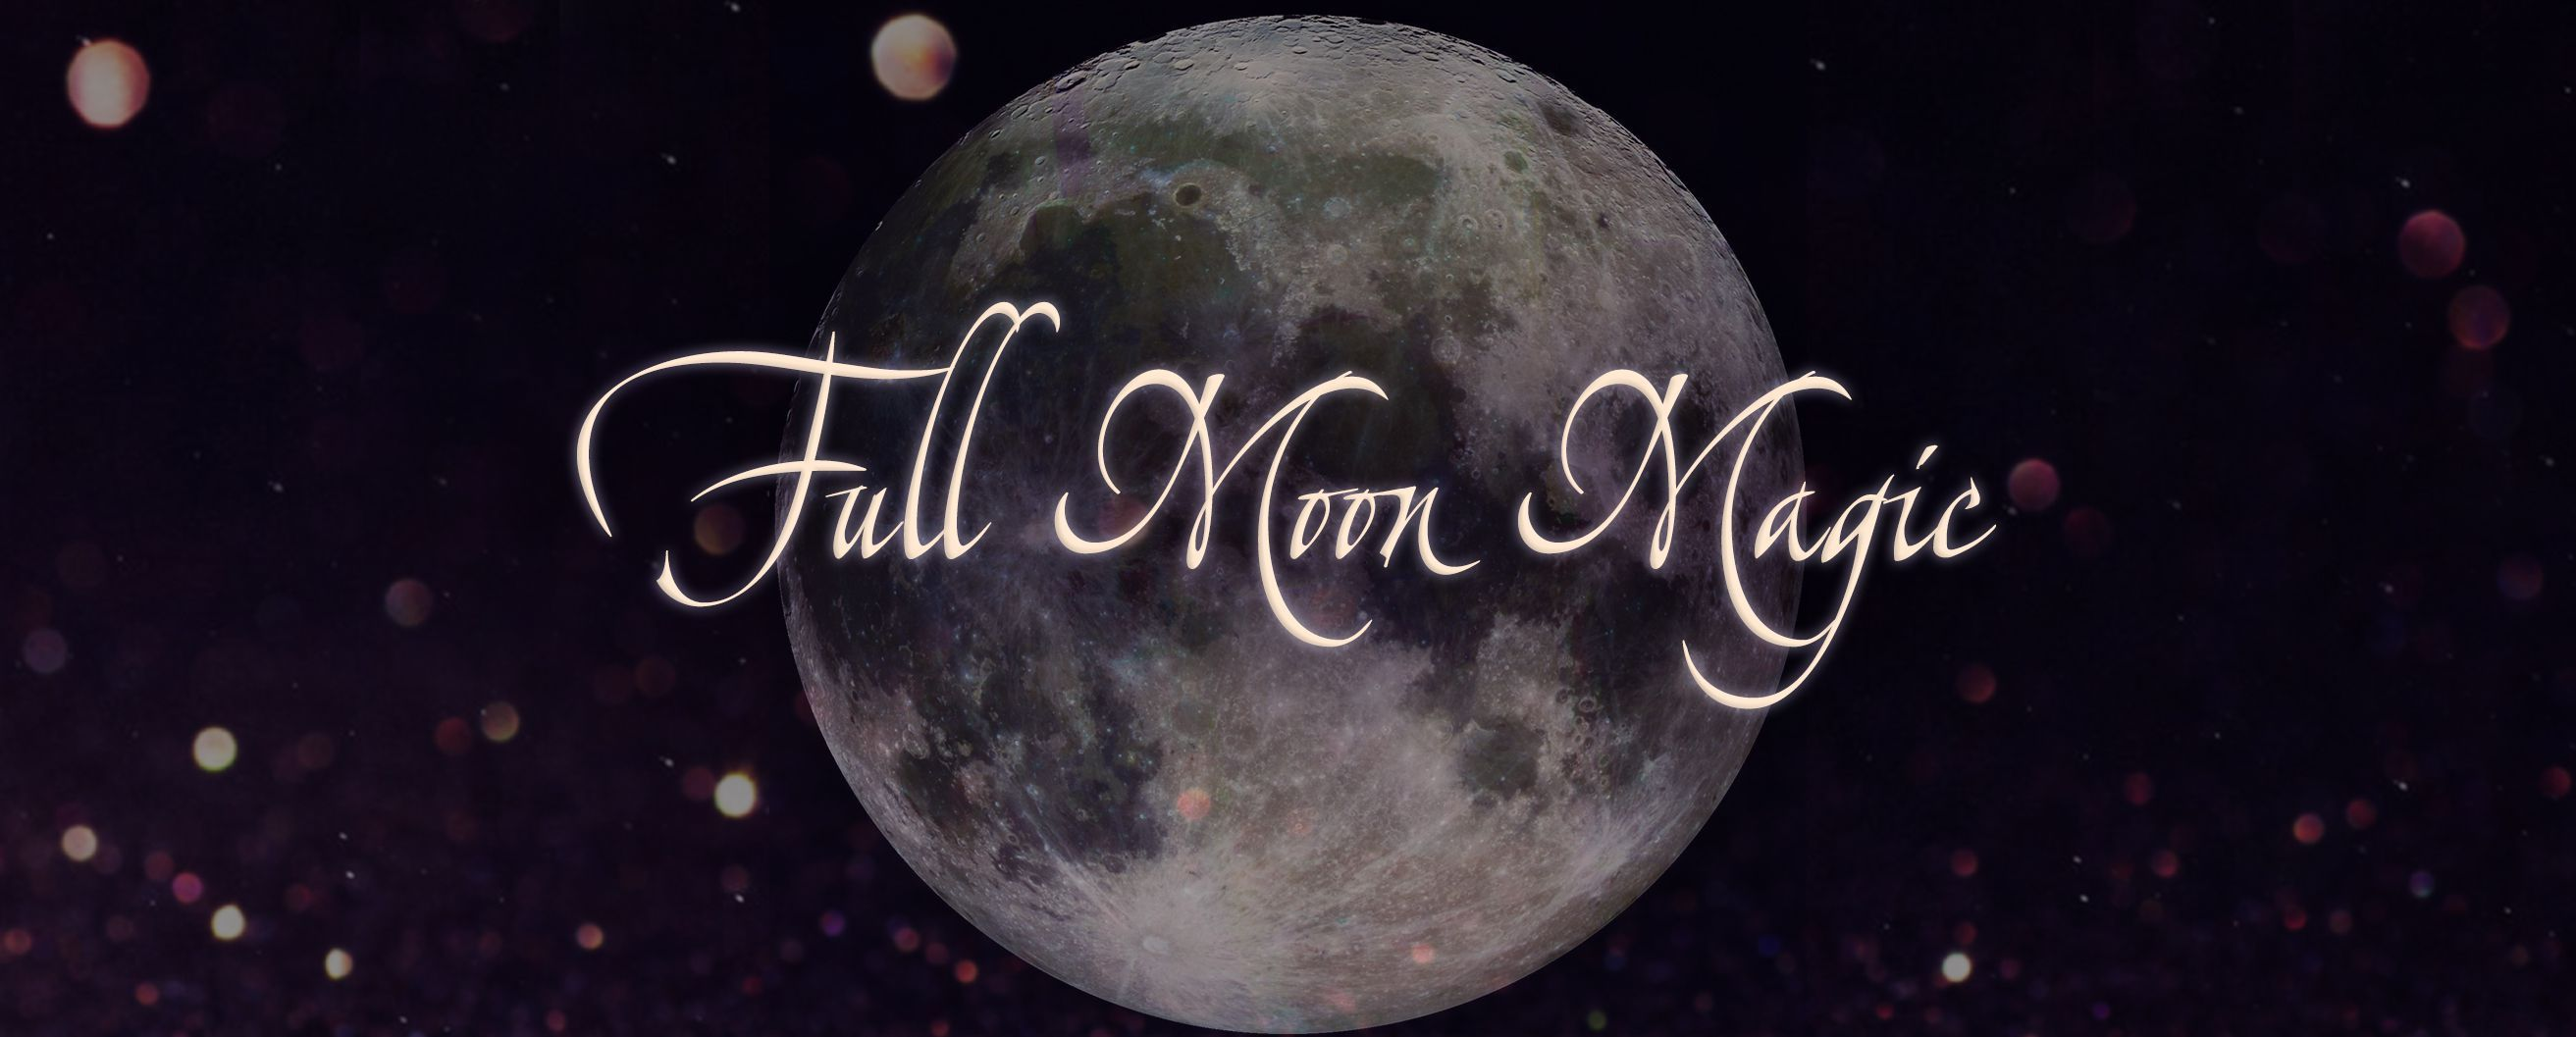 Truly understanding the full moon and other moon phases can seem a